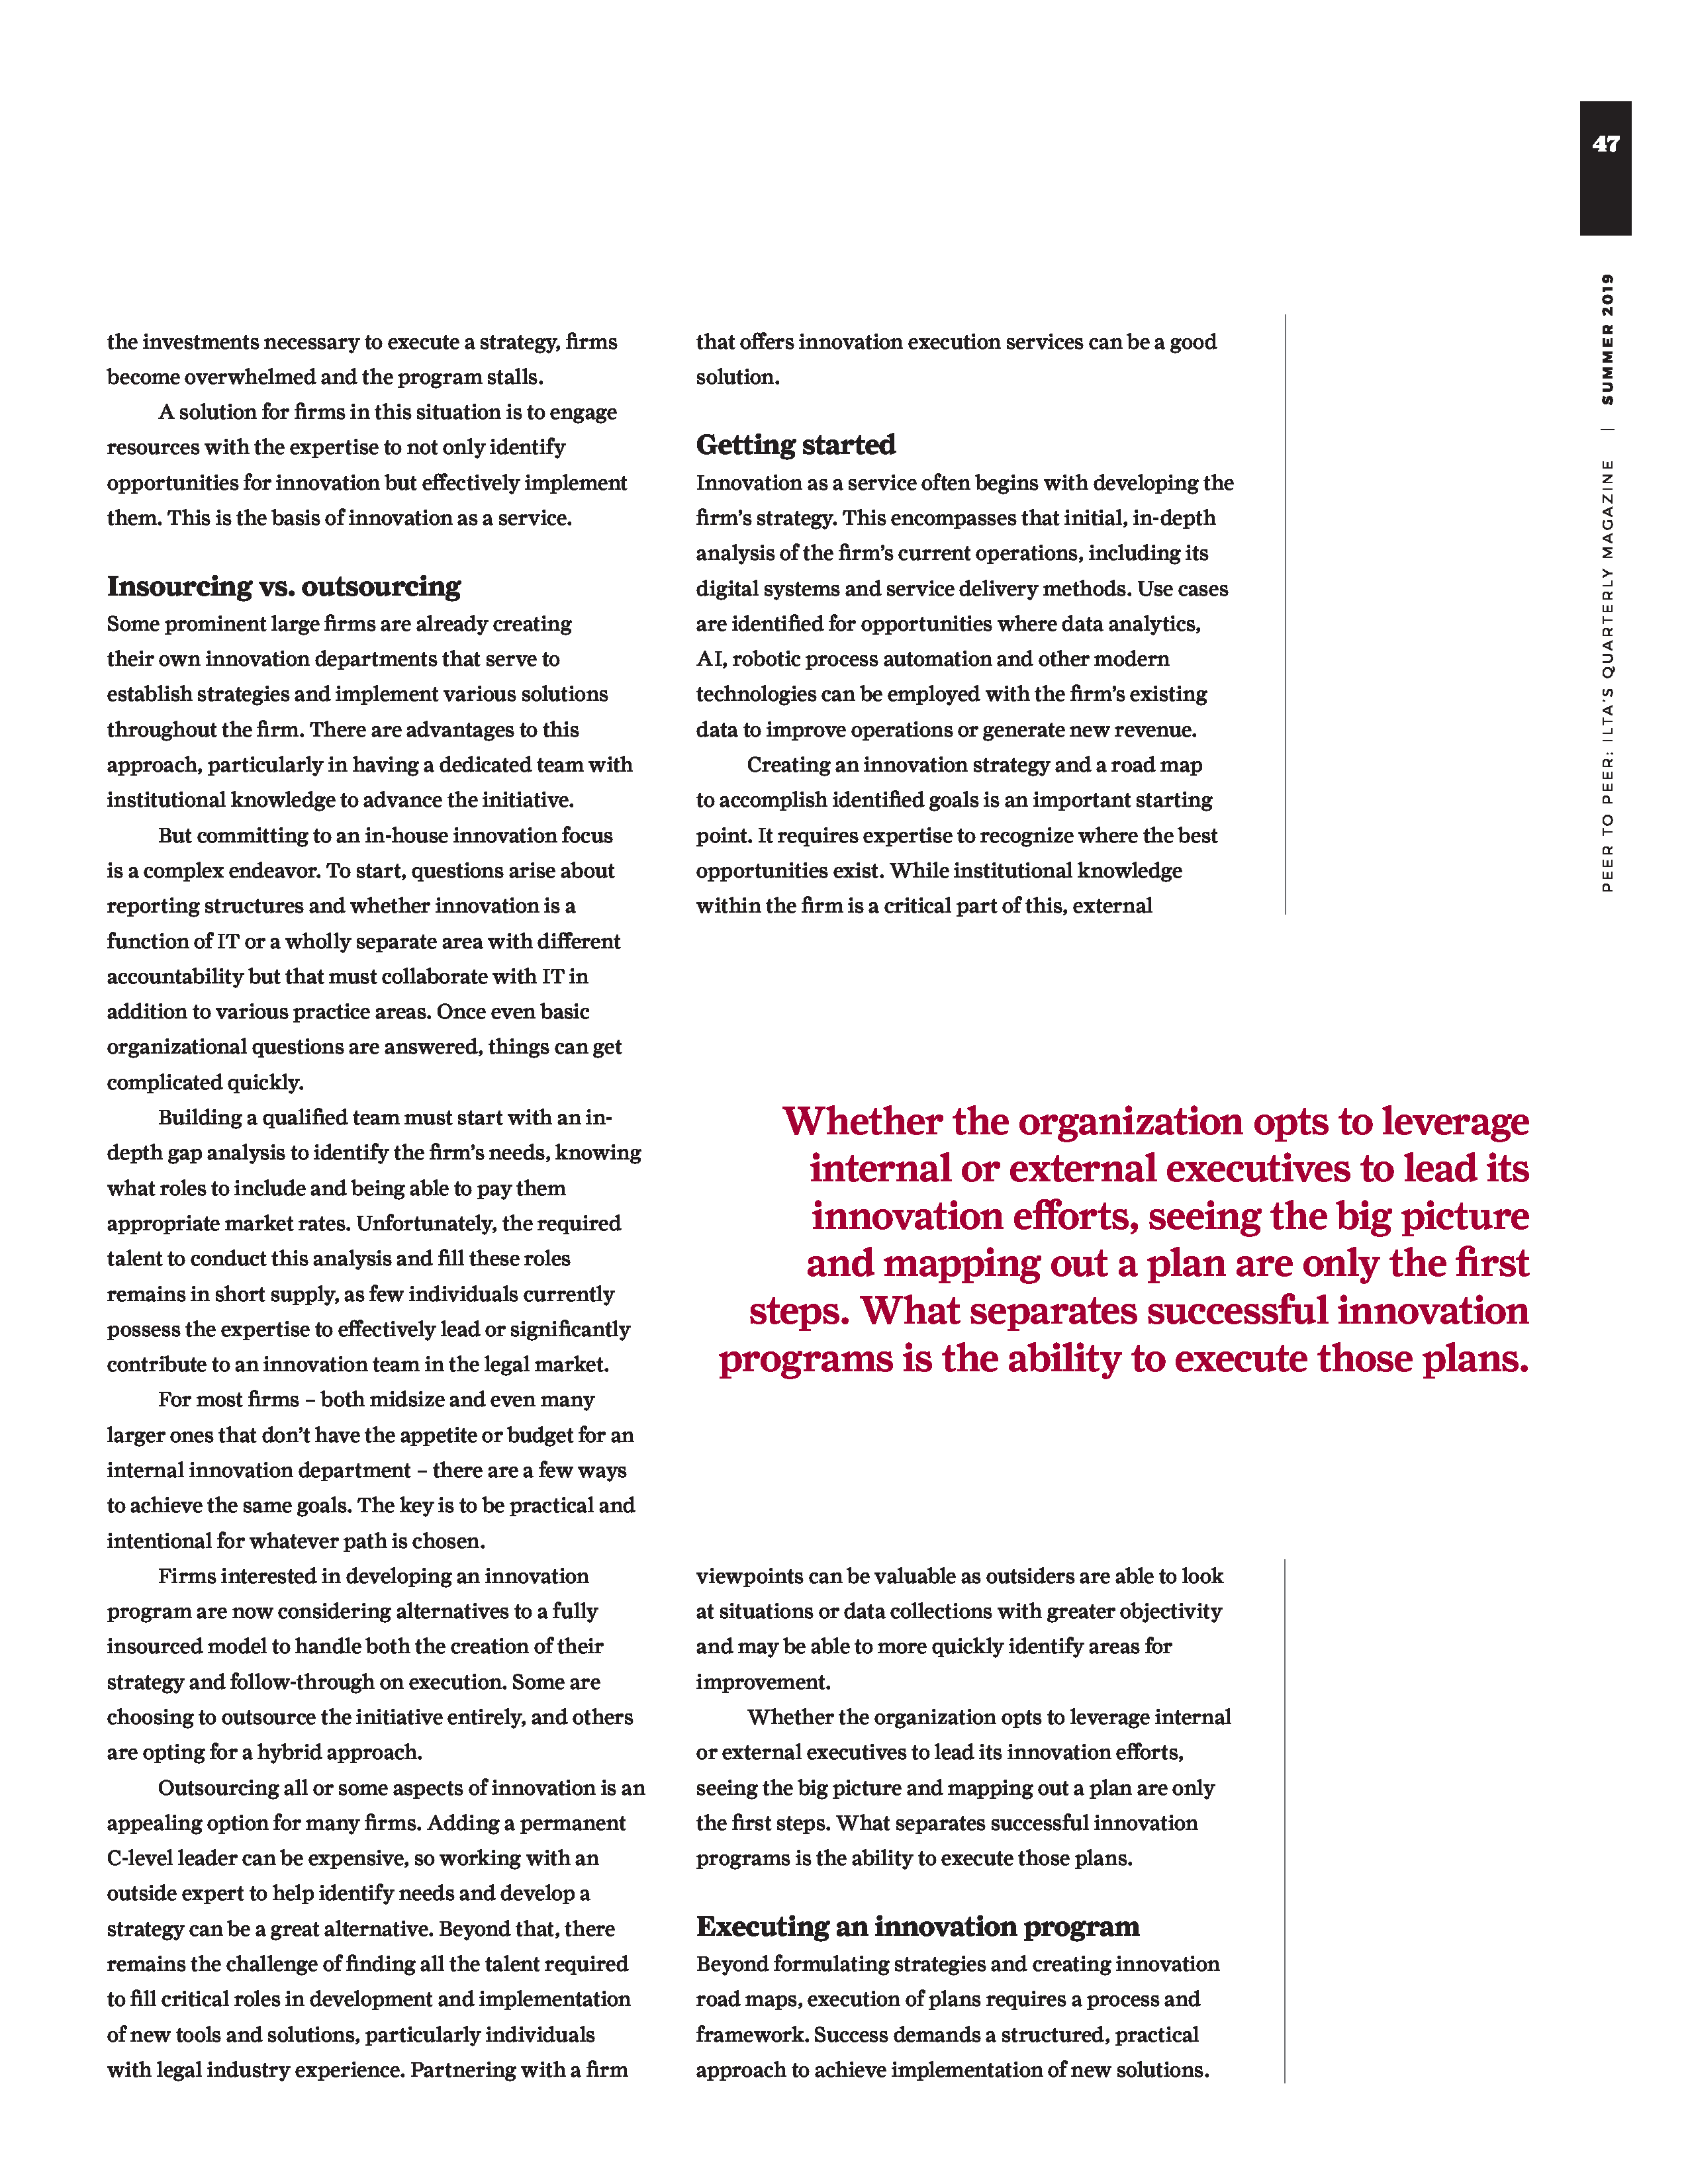 Article - Innovation as a Service - 7-10-19_Page_2